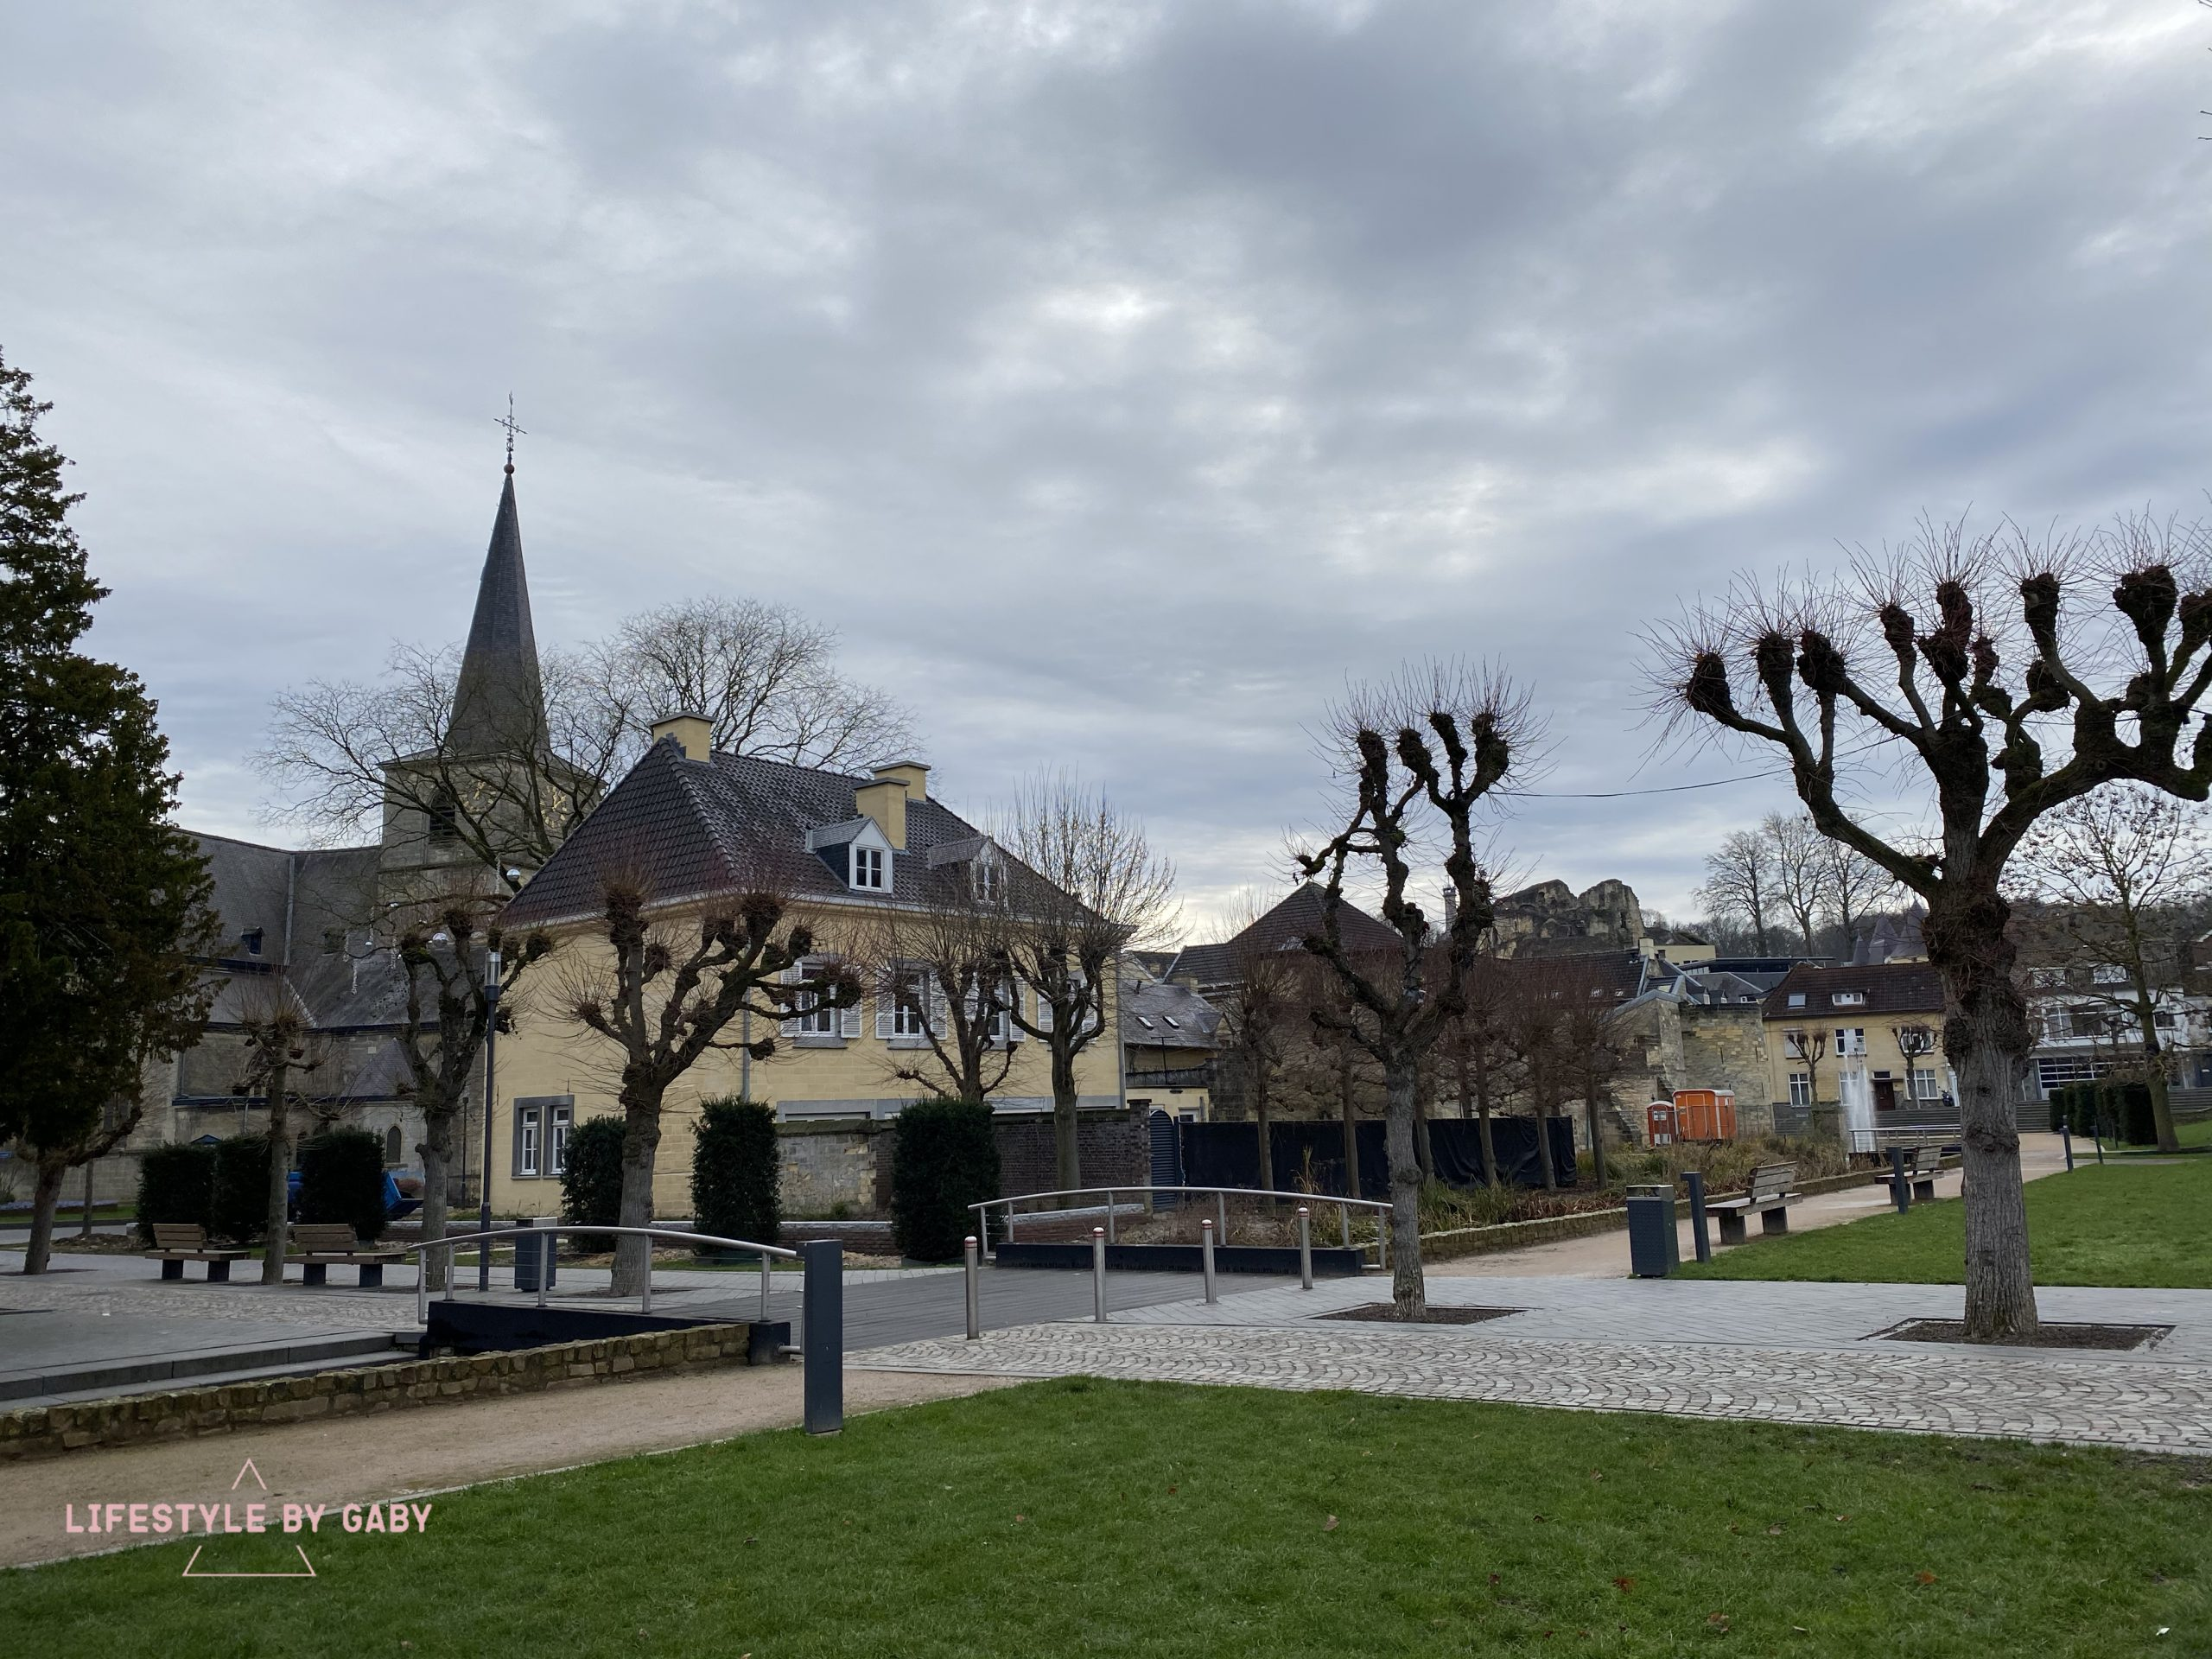 A trip to Valkenburg for 2 days.